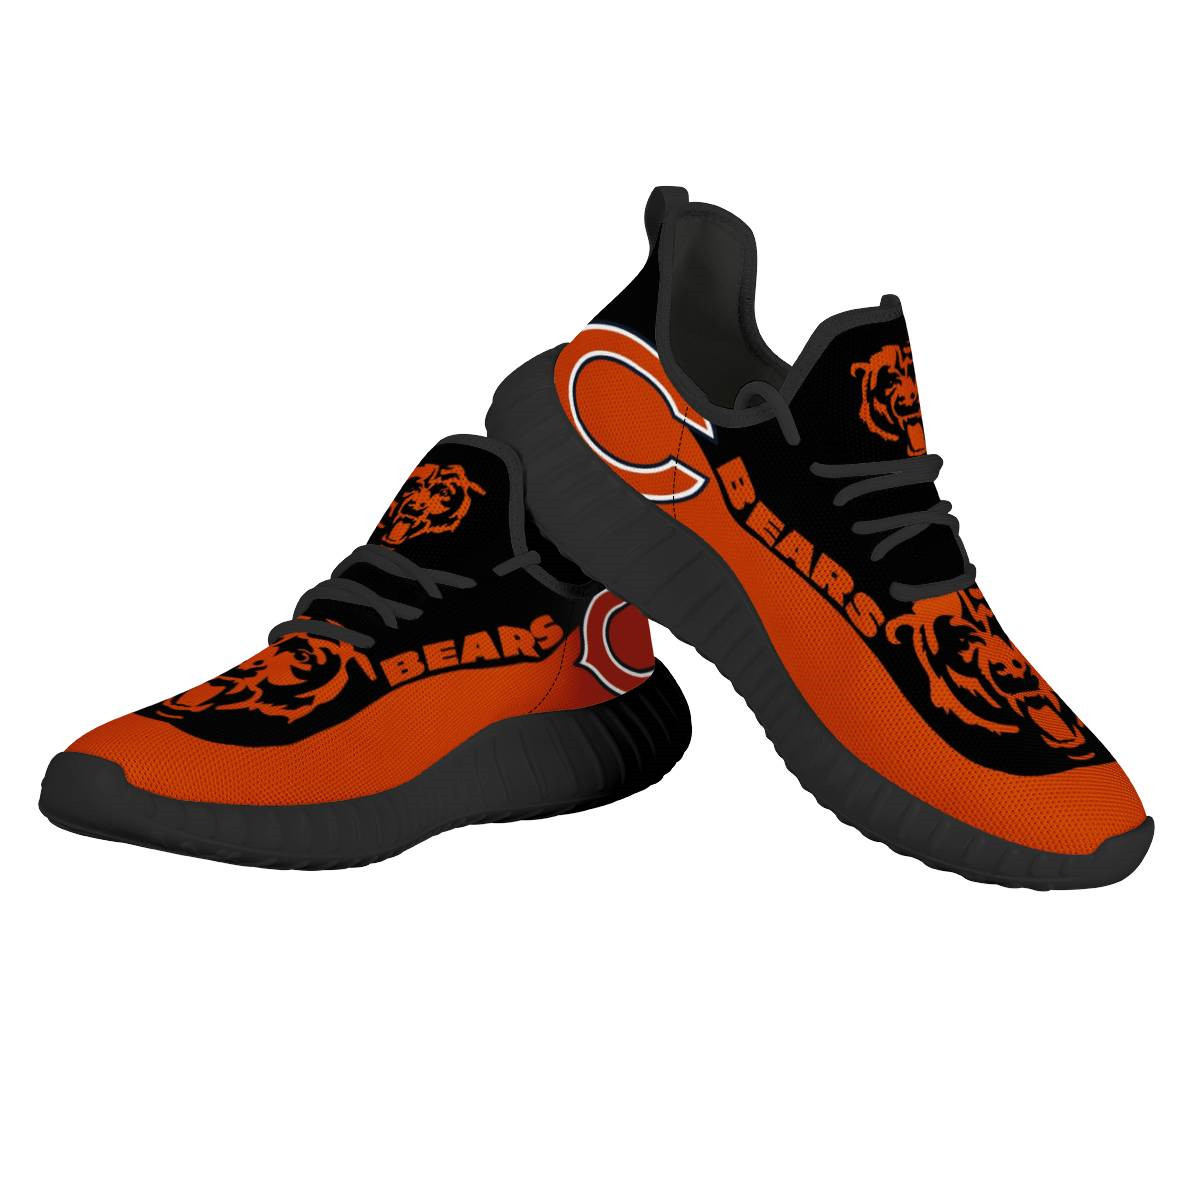 Women's NFL Chicago Bears Lightweight Running Shoes 018